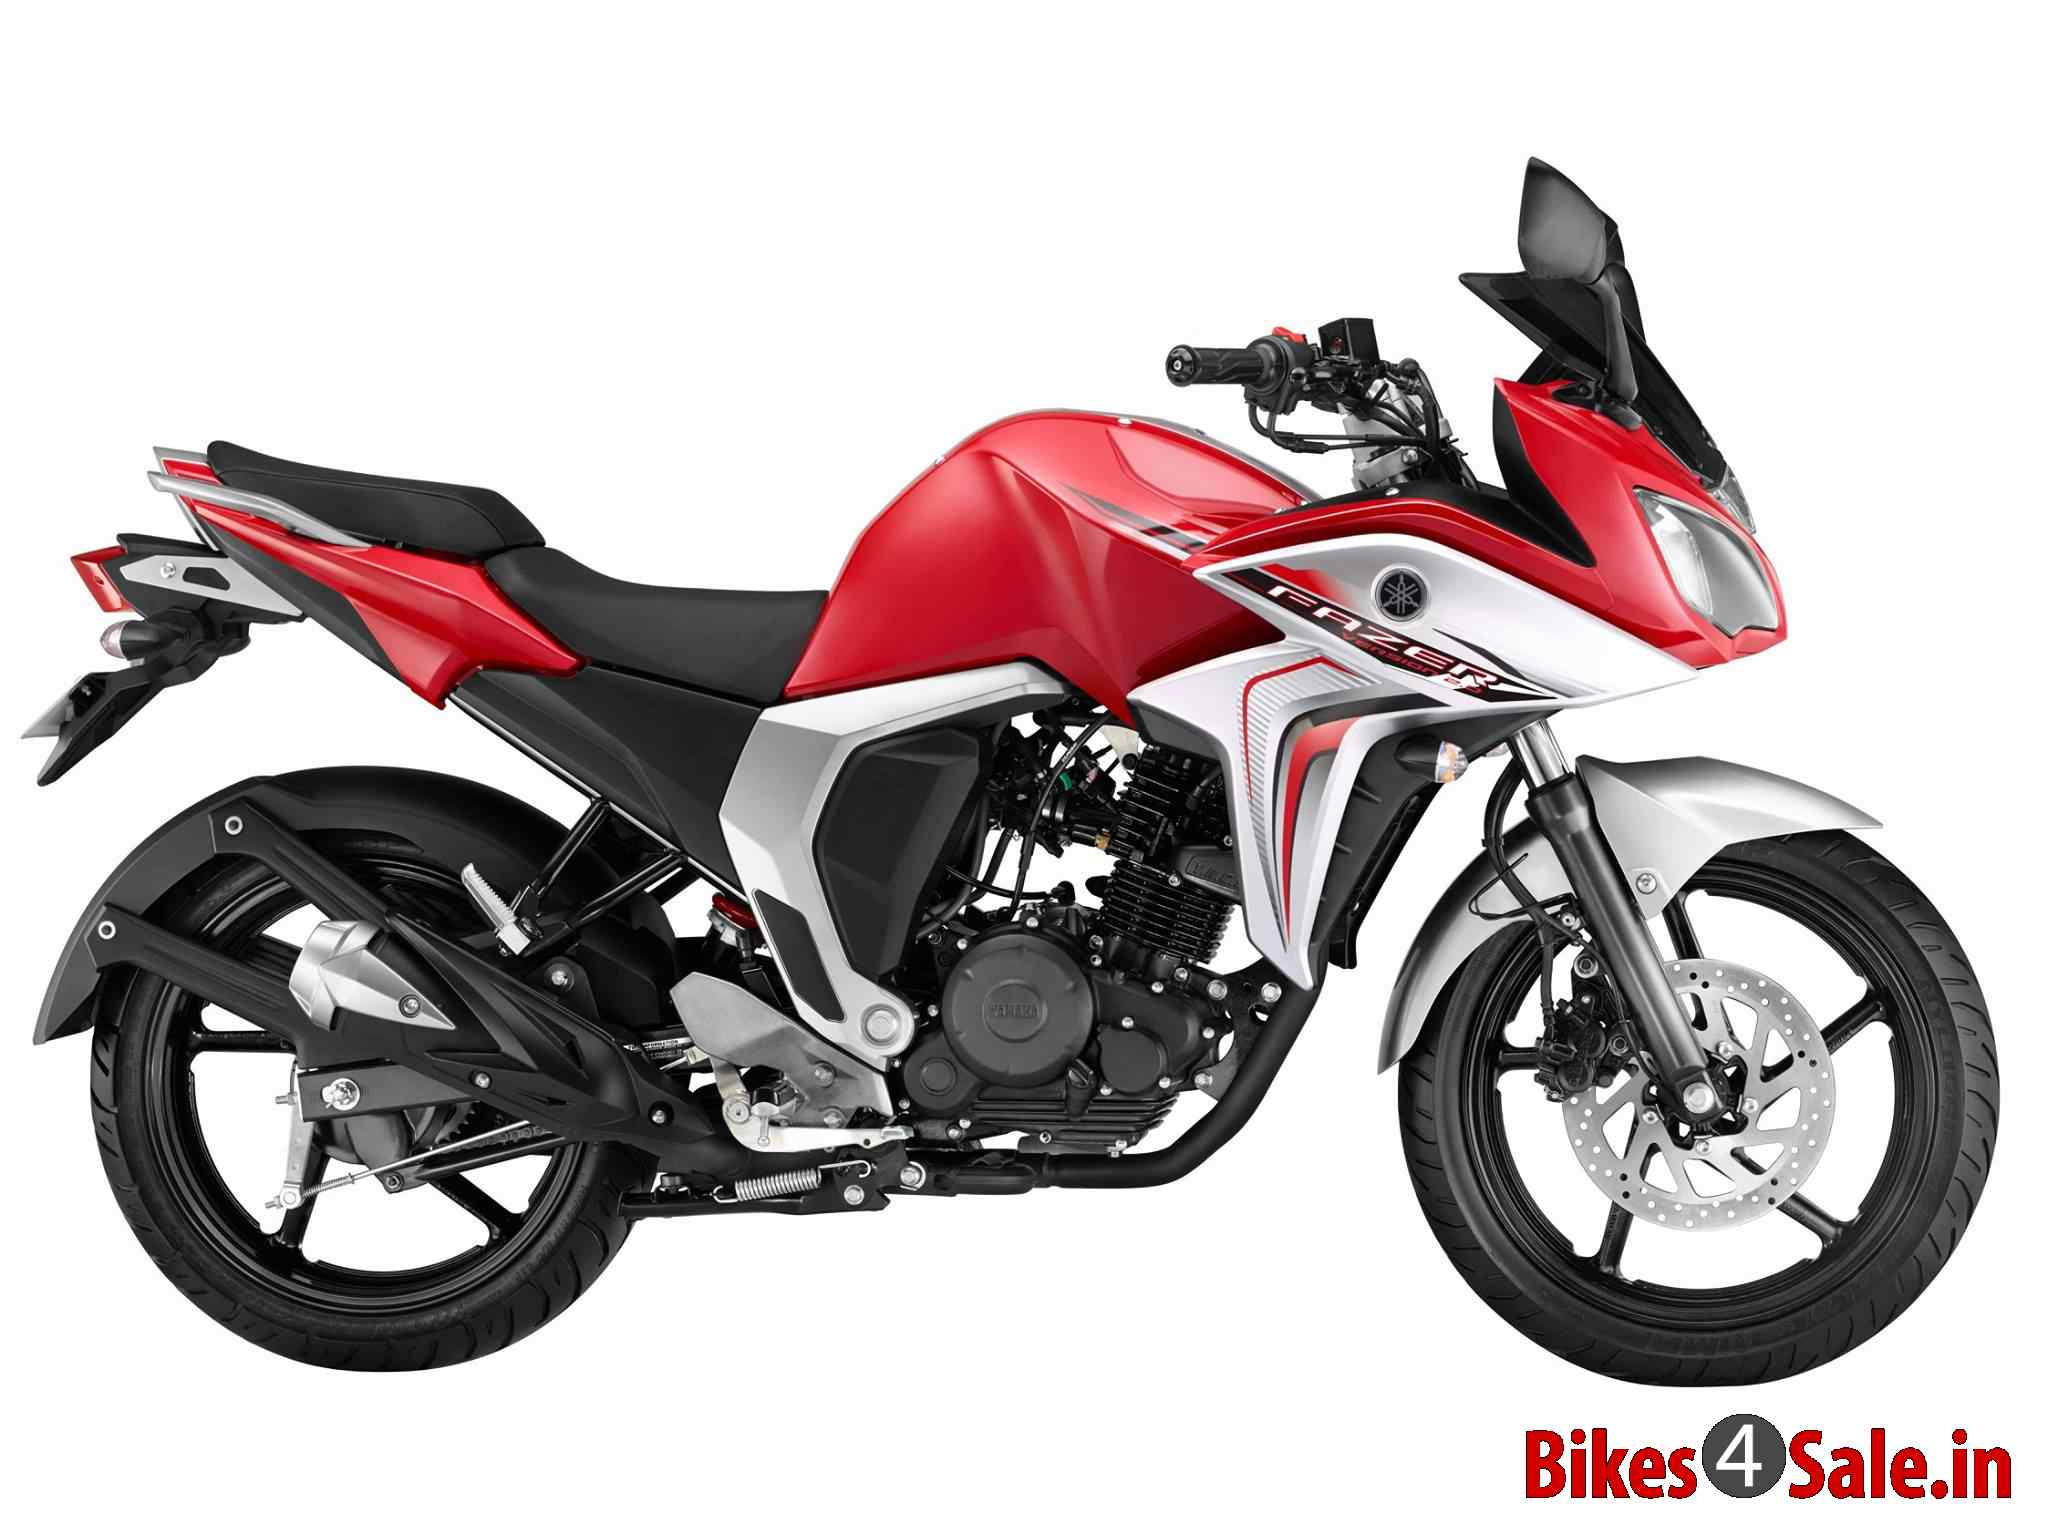 yamaha fazer fi v2 motorcycle picture gallery red colour bikes4sale. Black Bedroom Furniture Sets. Home Design Ideas